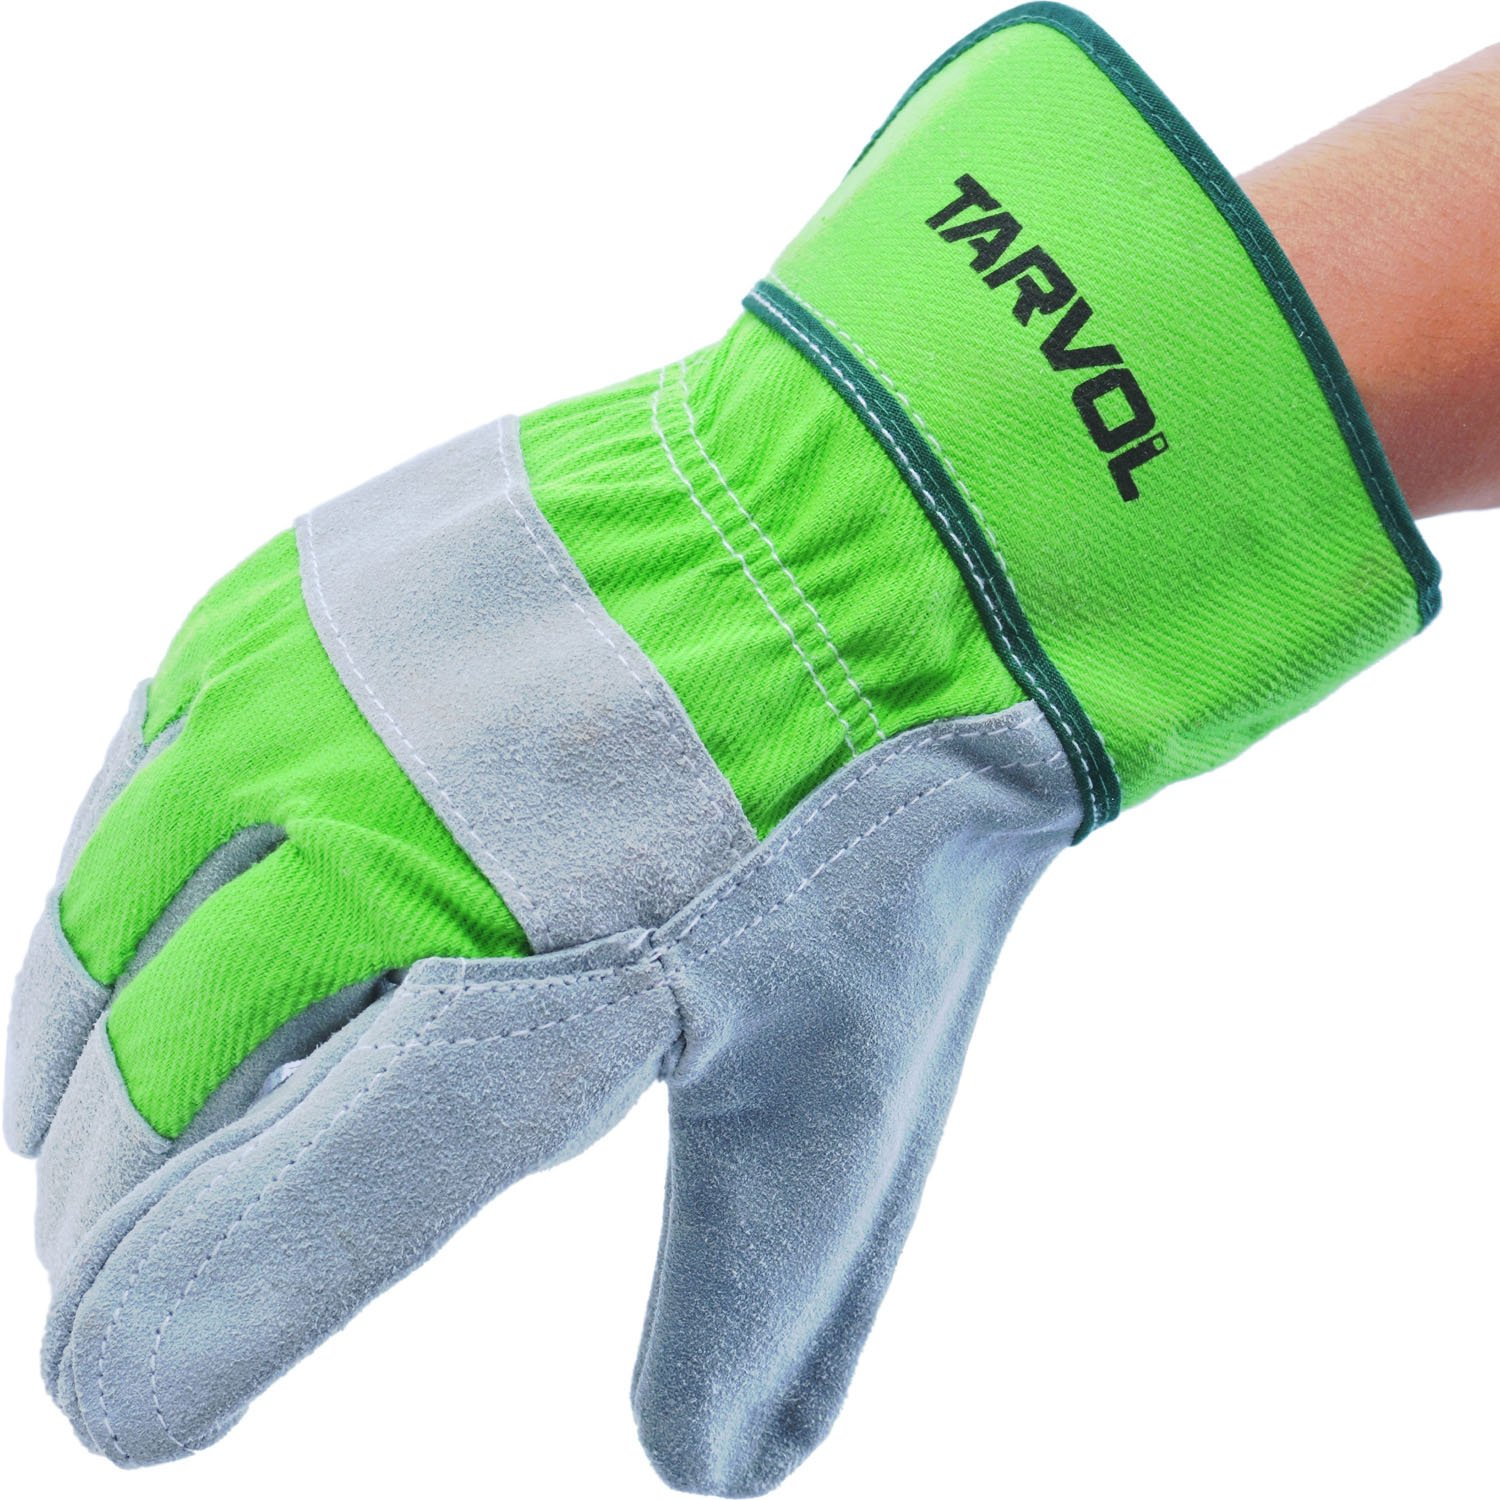 Best Heavy Duty Gloves For Work Amazon Com